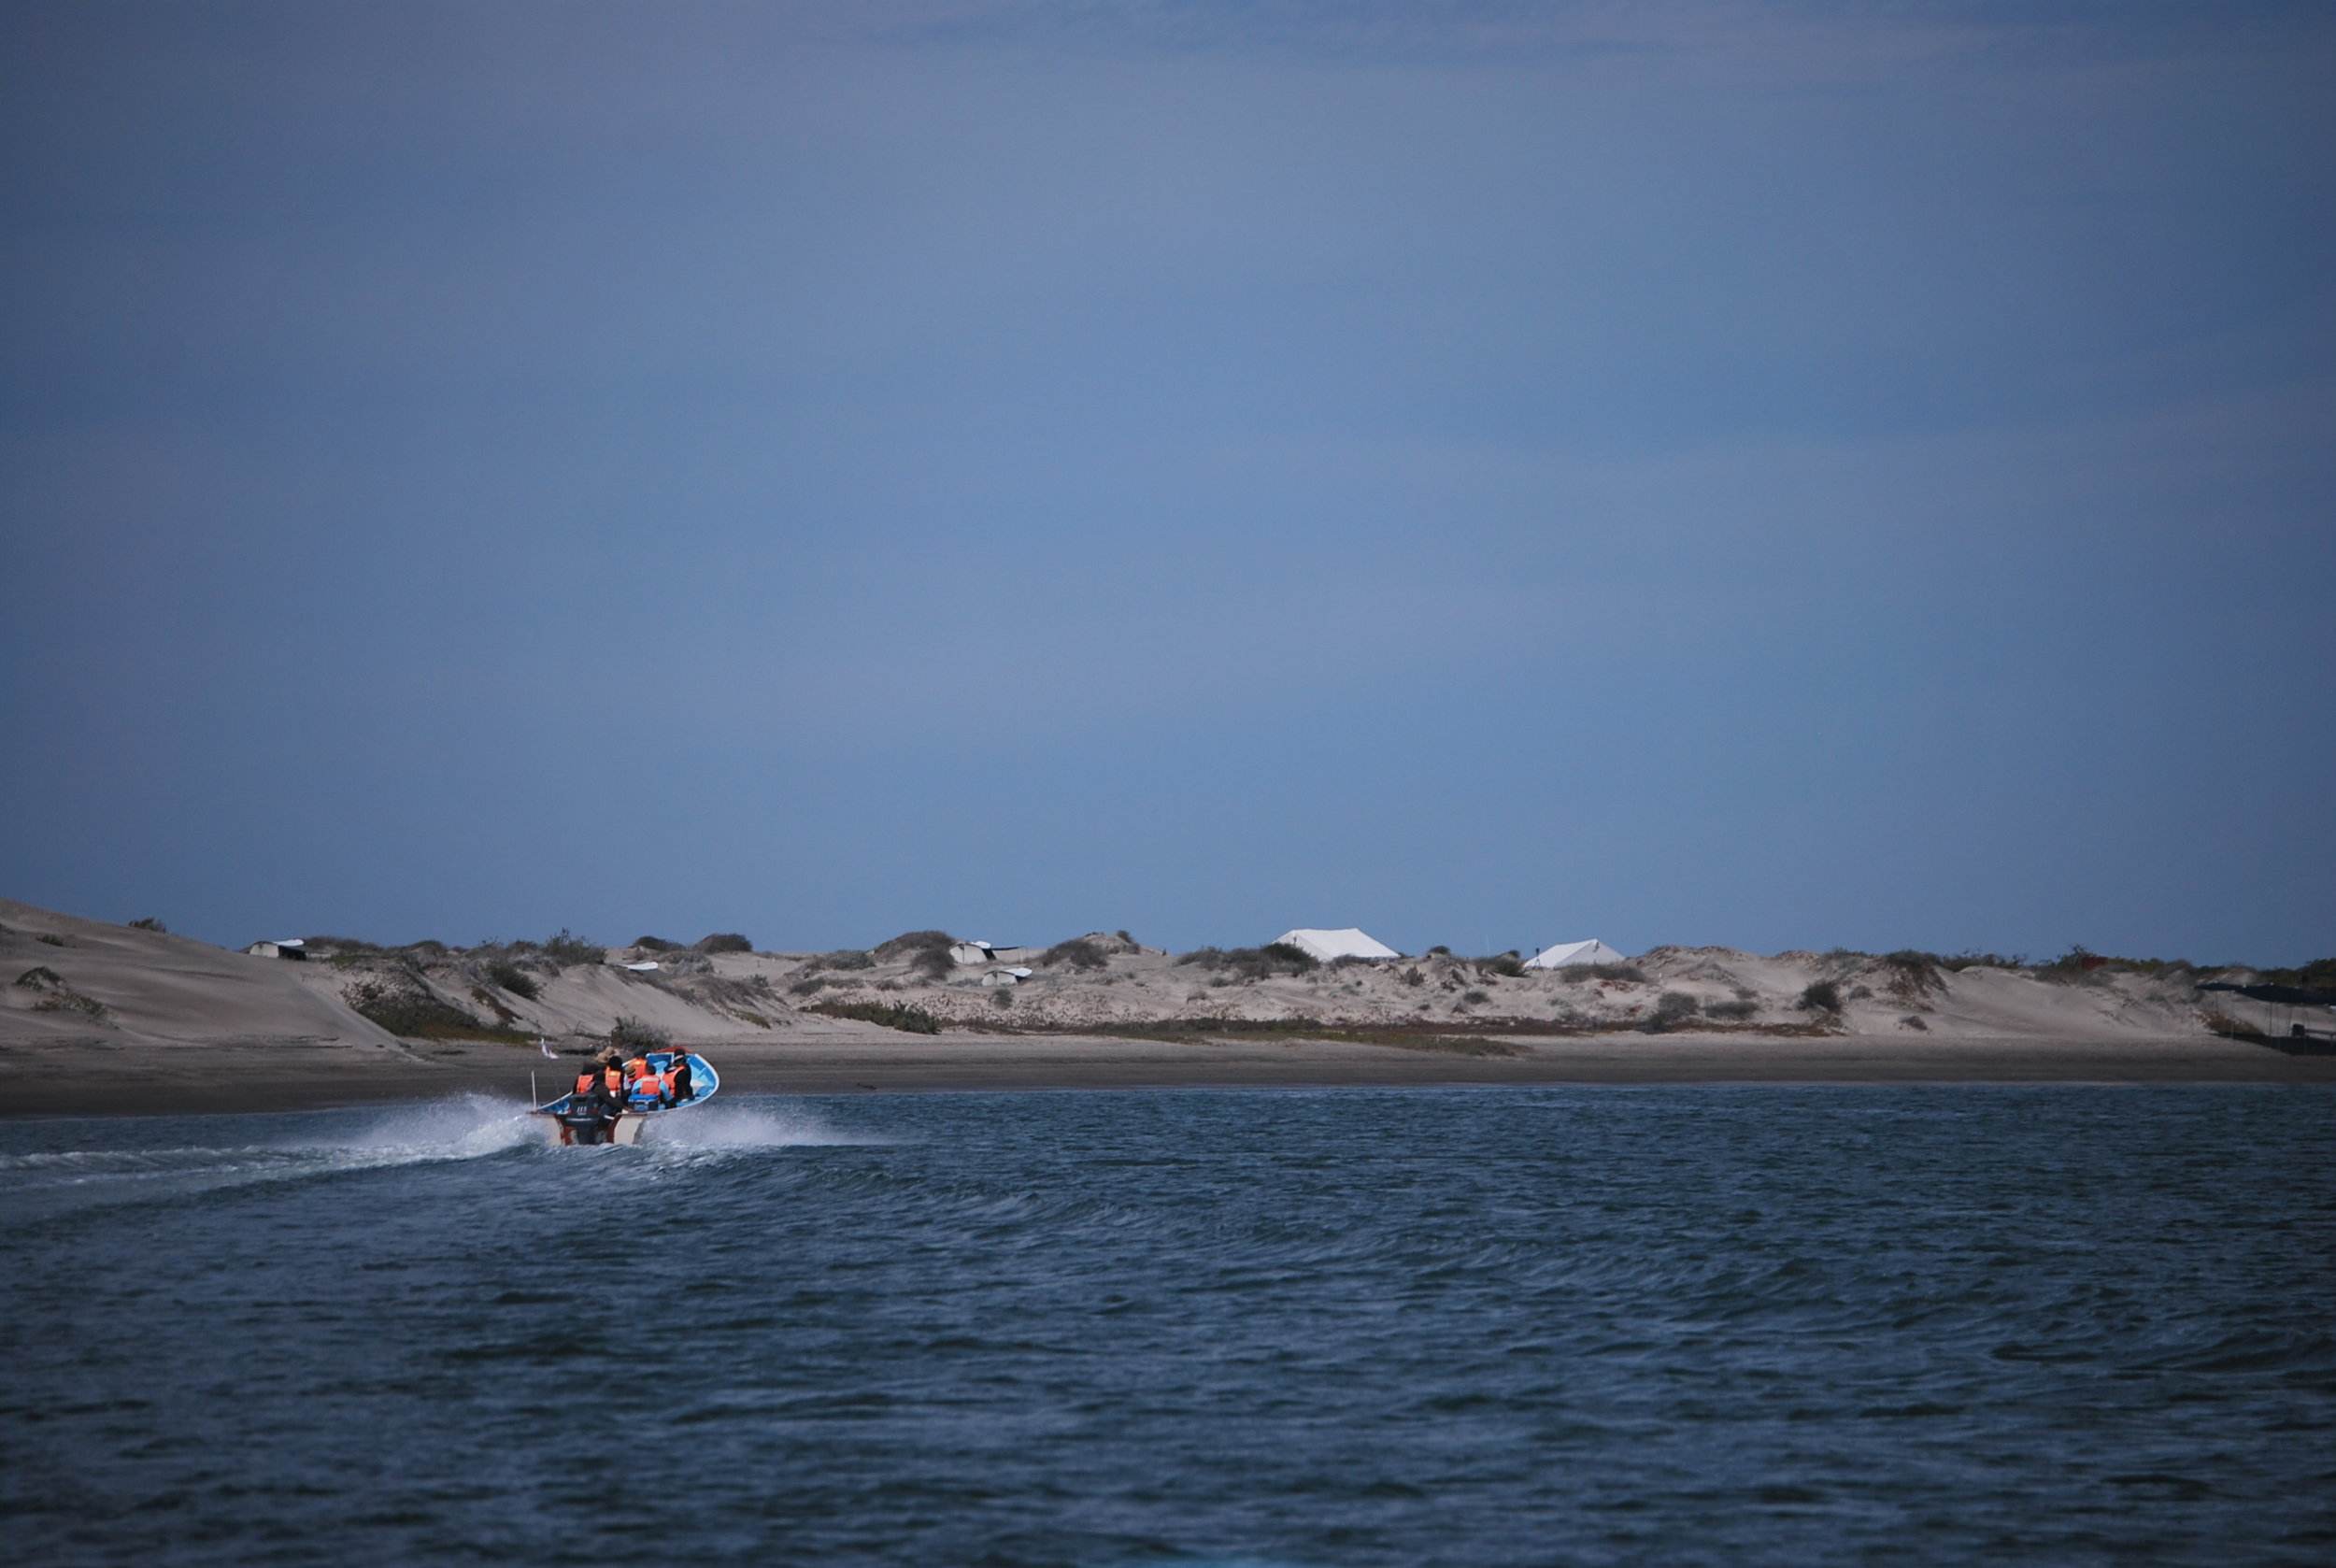 Day 2: We will head to Magdalena Bay to the tent camp and look for whales on the way